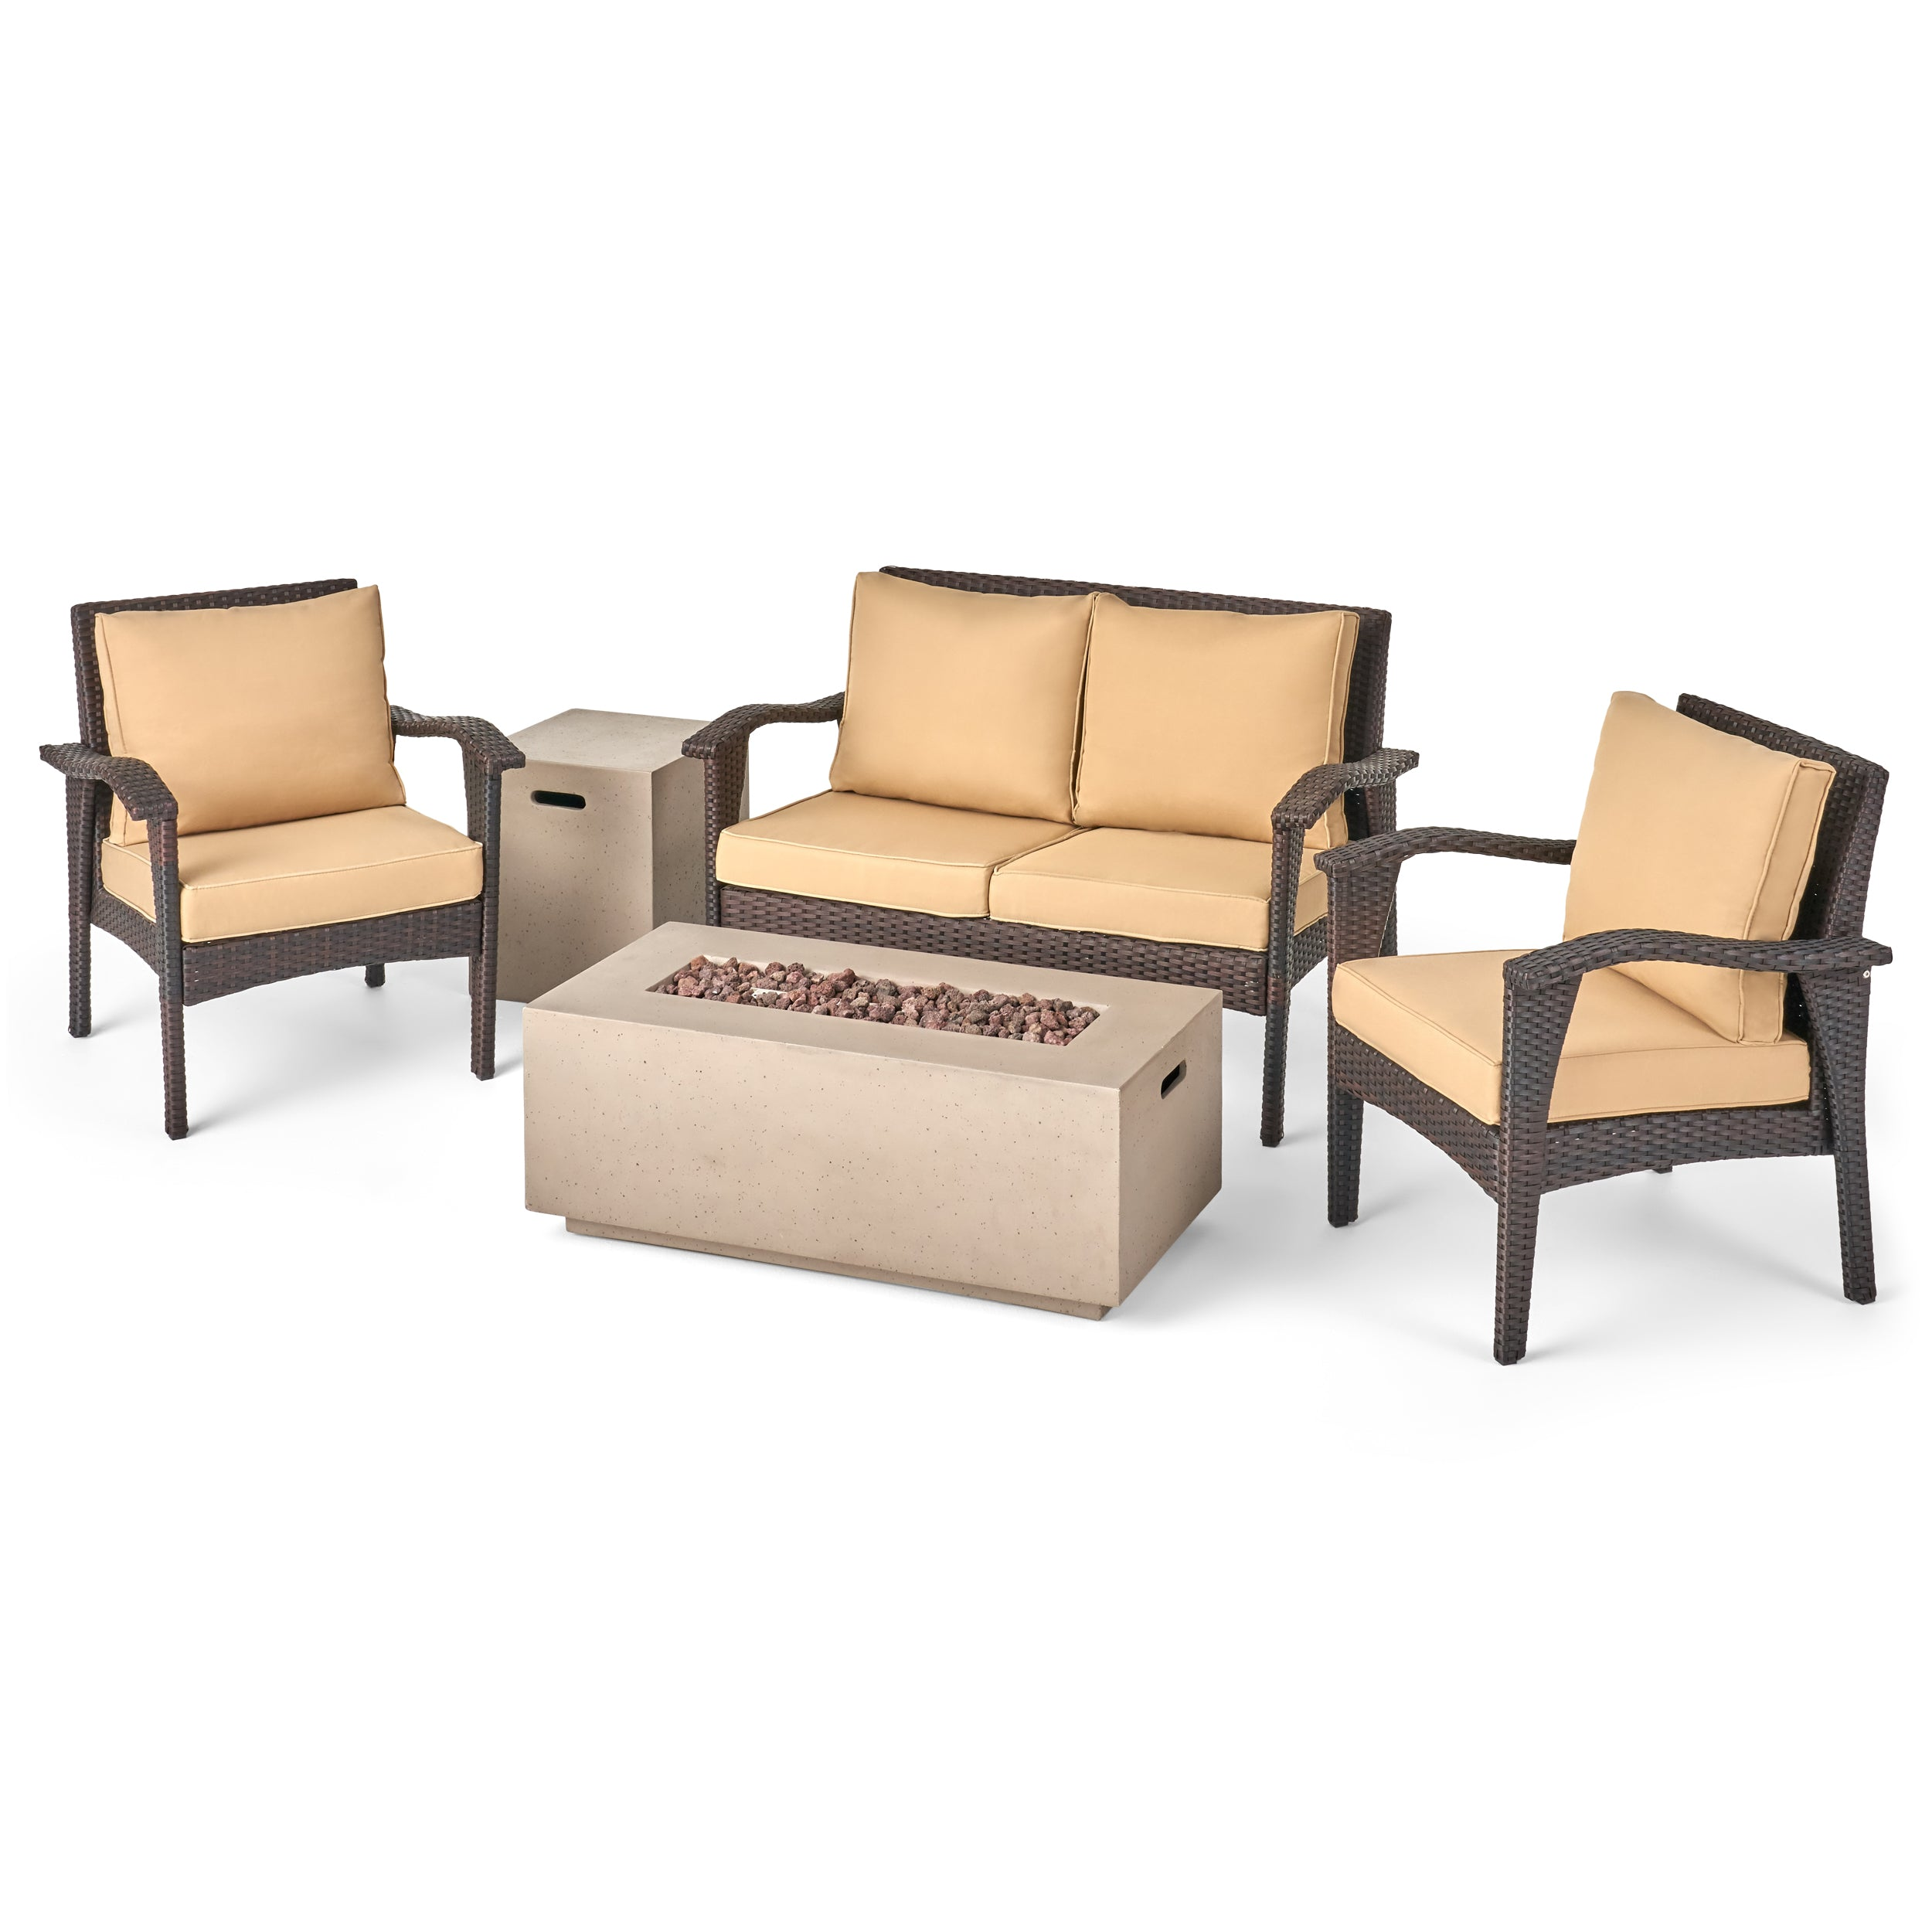 Alanny Outdoor 4 Seater Wicker Chat Set with Fire Pit